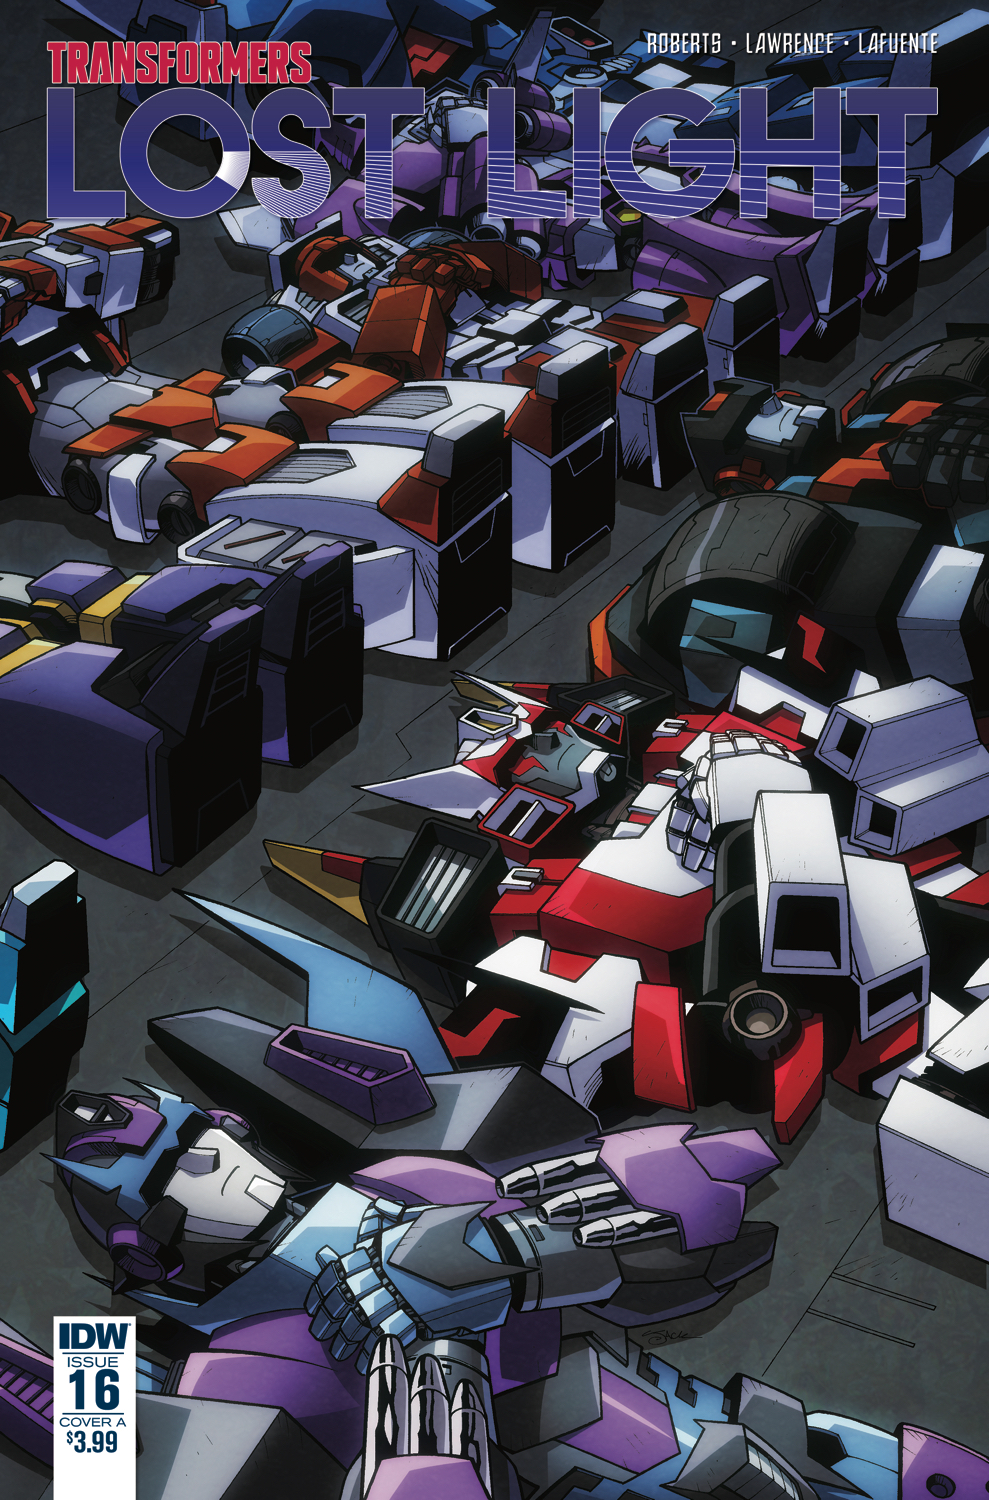 TRANSFORMERS LOST LIGHT #16 CVR A LAWRENCE